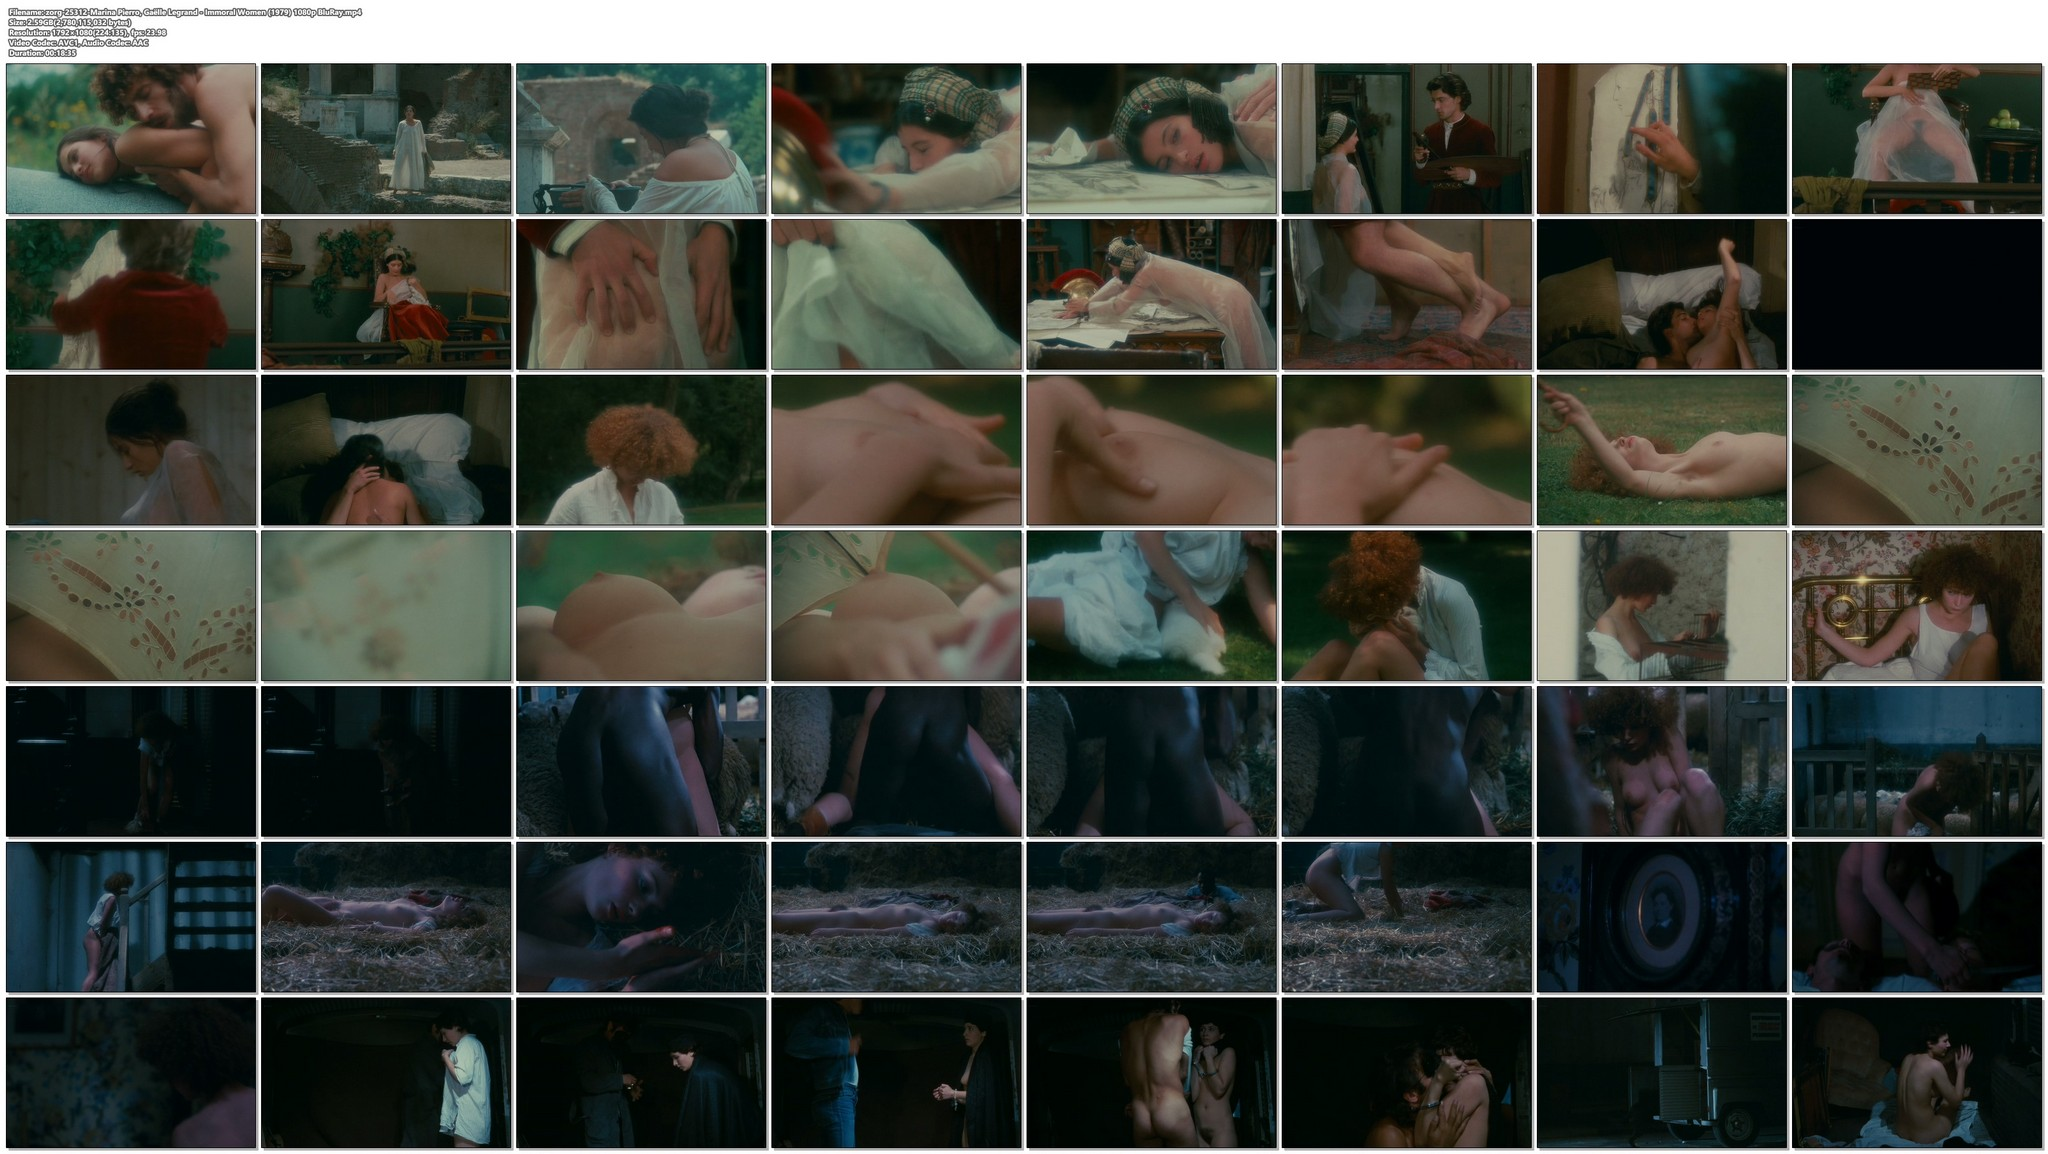 Marina Pierro nude sex Gaelle Legrand and Pascale Christophe nude bush and sex Les heroines du mal 1979 1080p BluRay REMUX 24